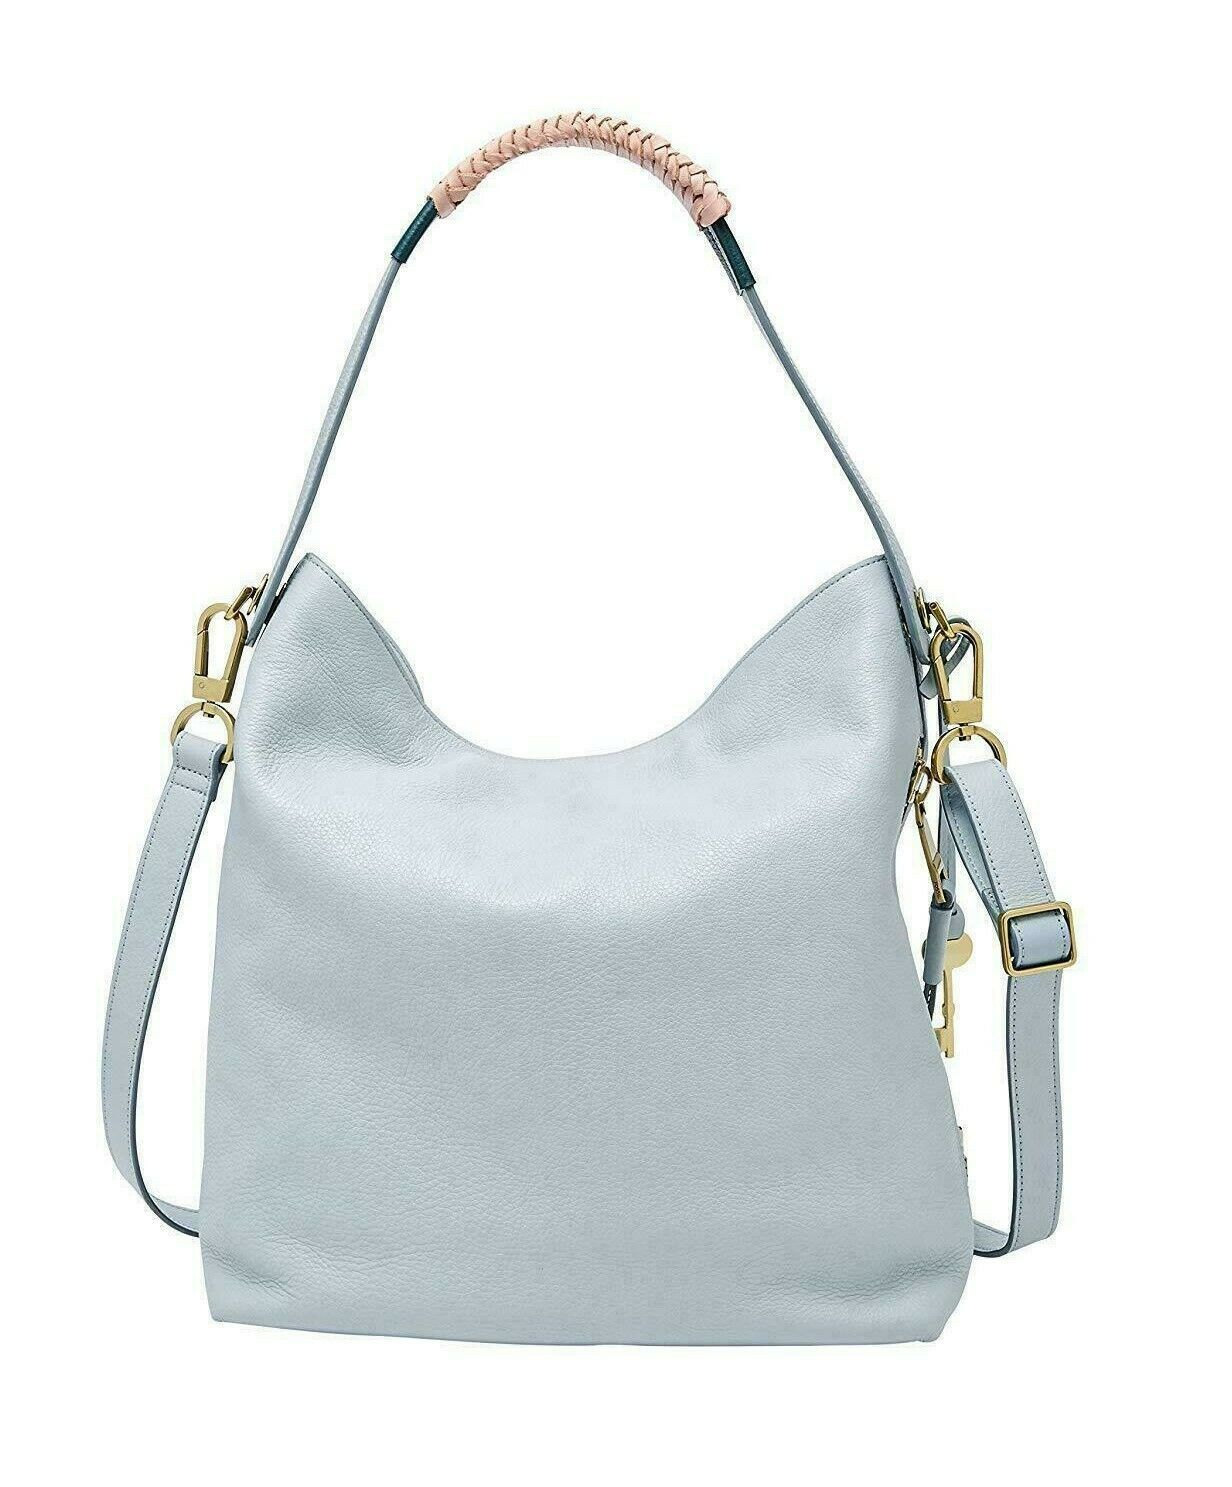 New Fossil Women's Maya Small Leather Hobo Bag Variety Colors image 3